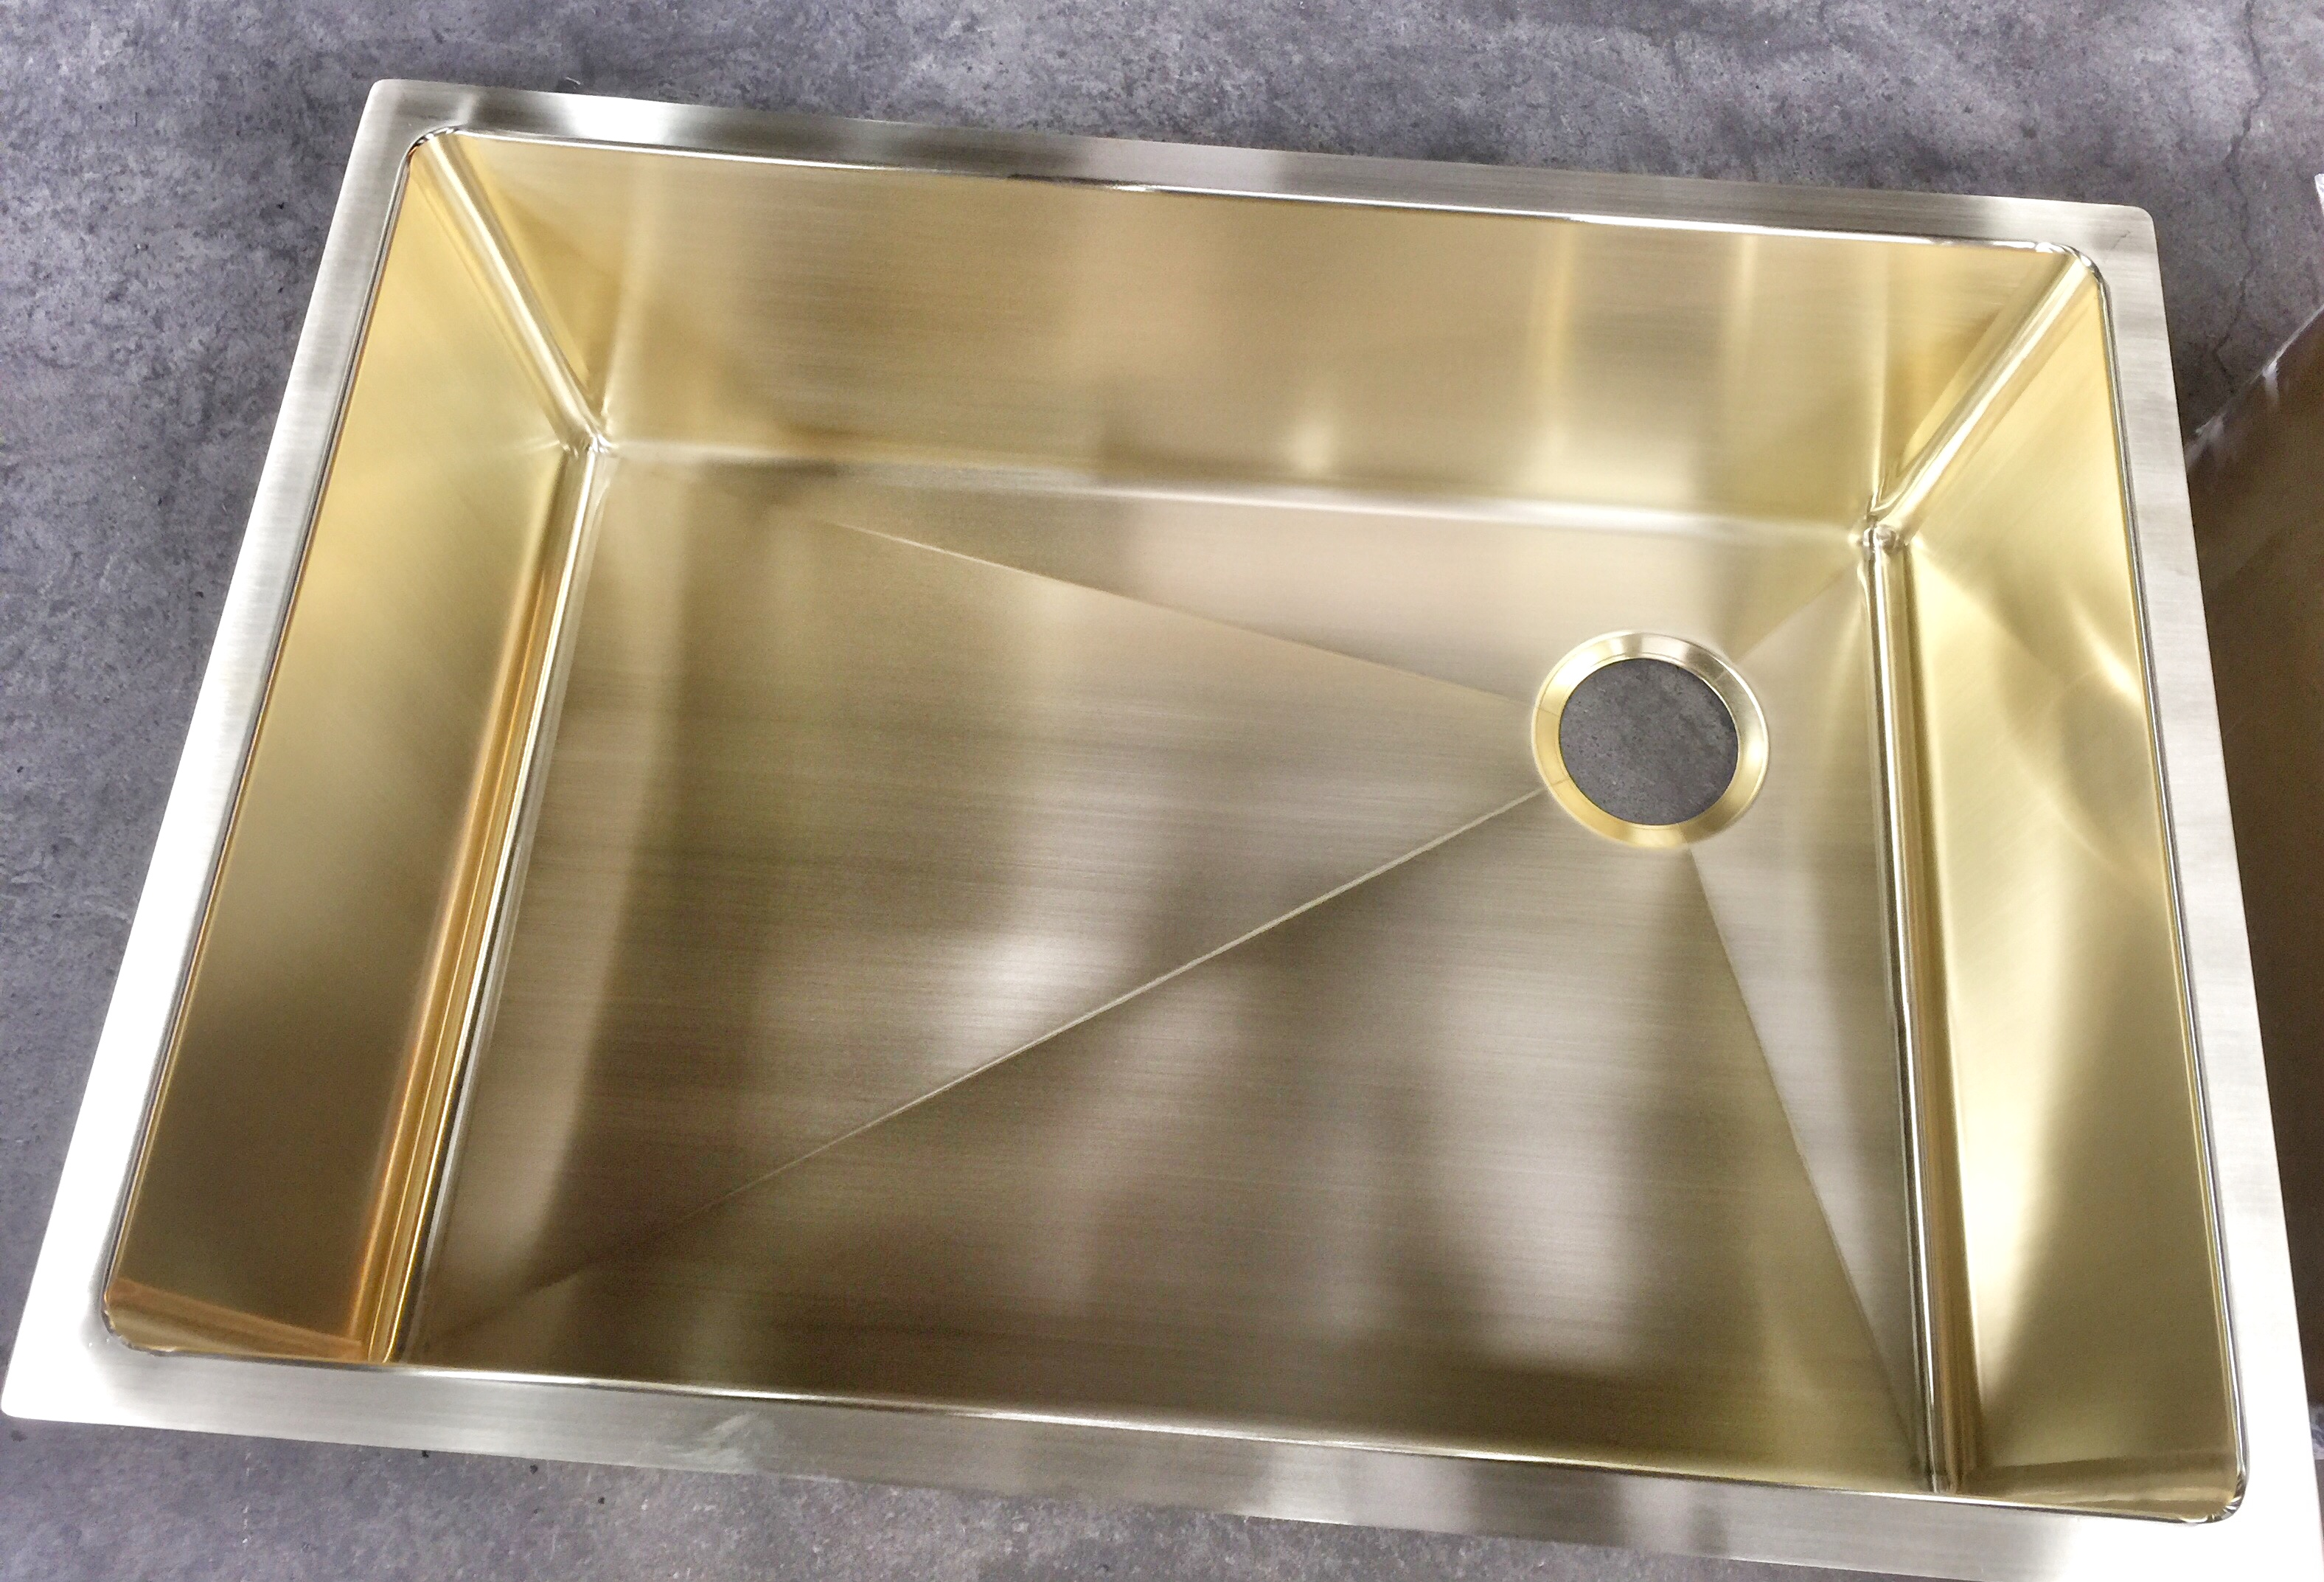 Custom Brass Sinks Made To Order